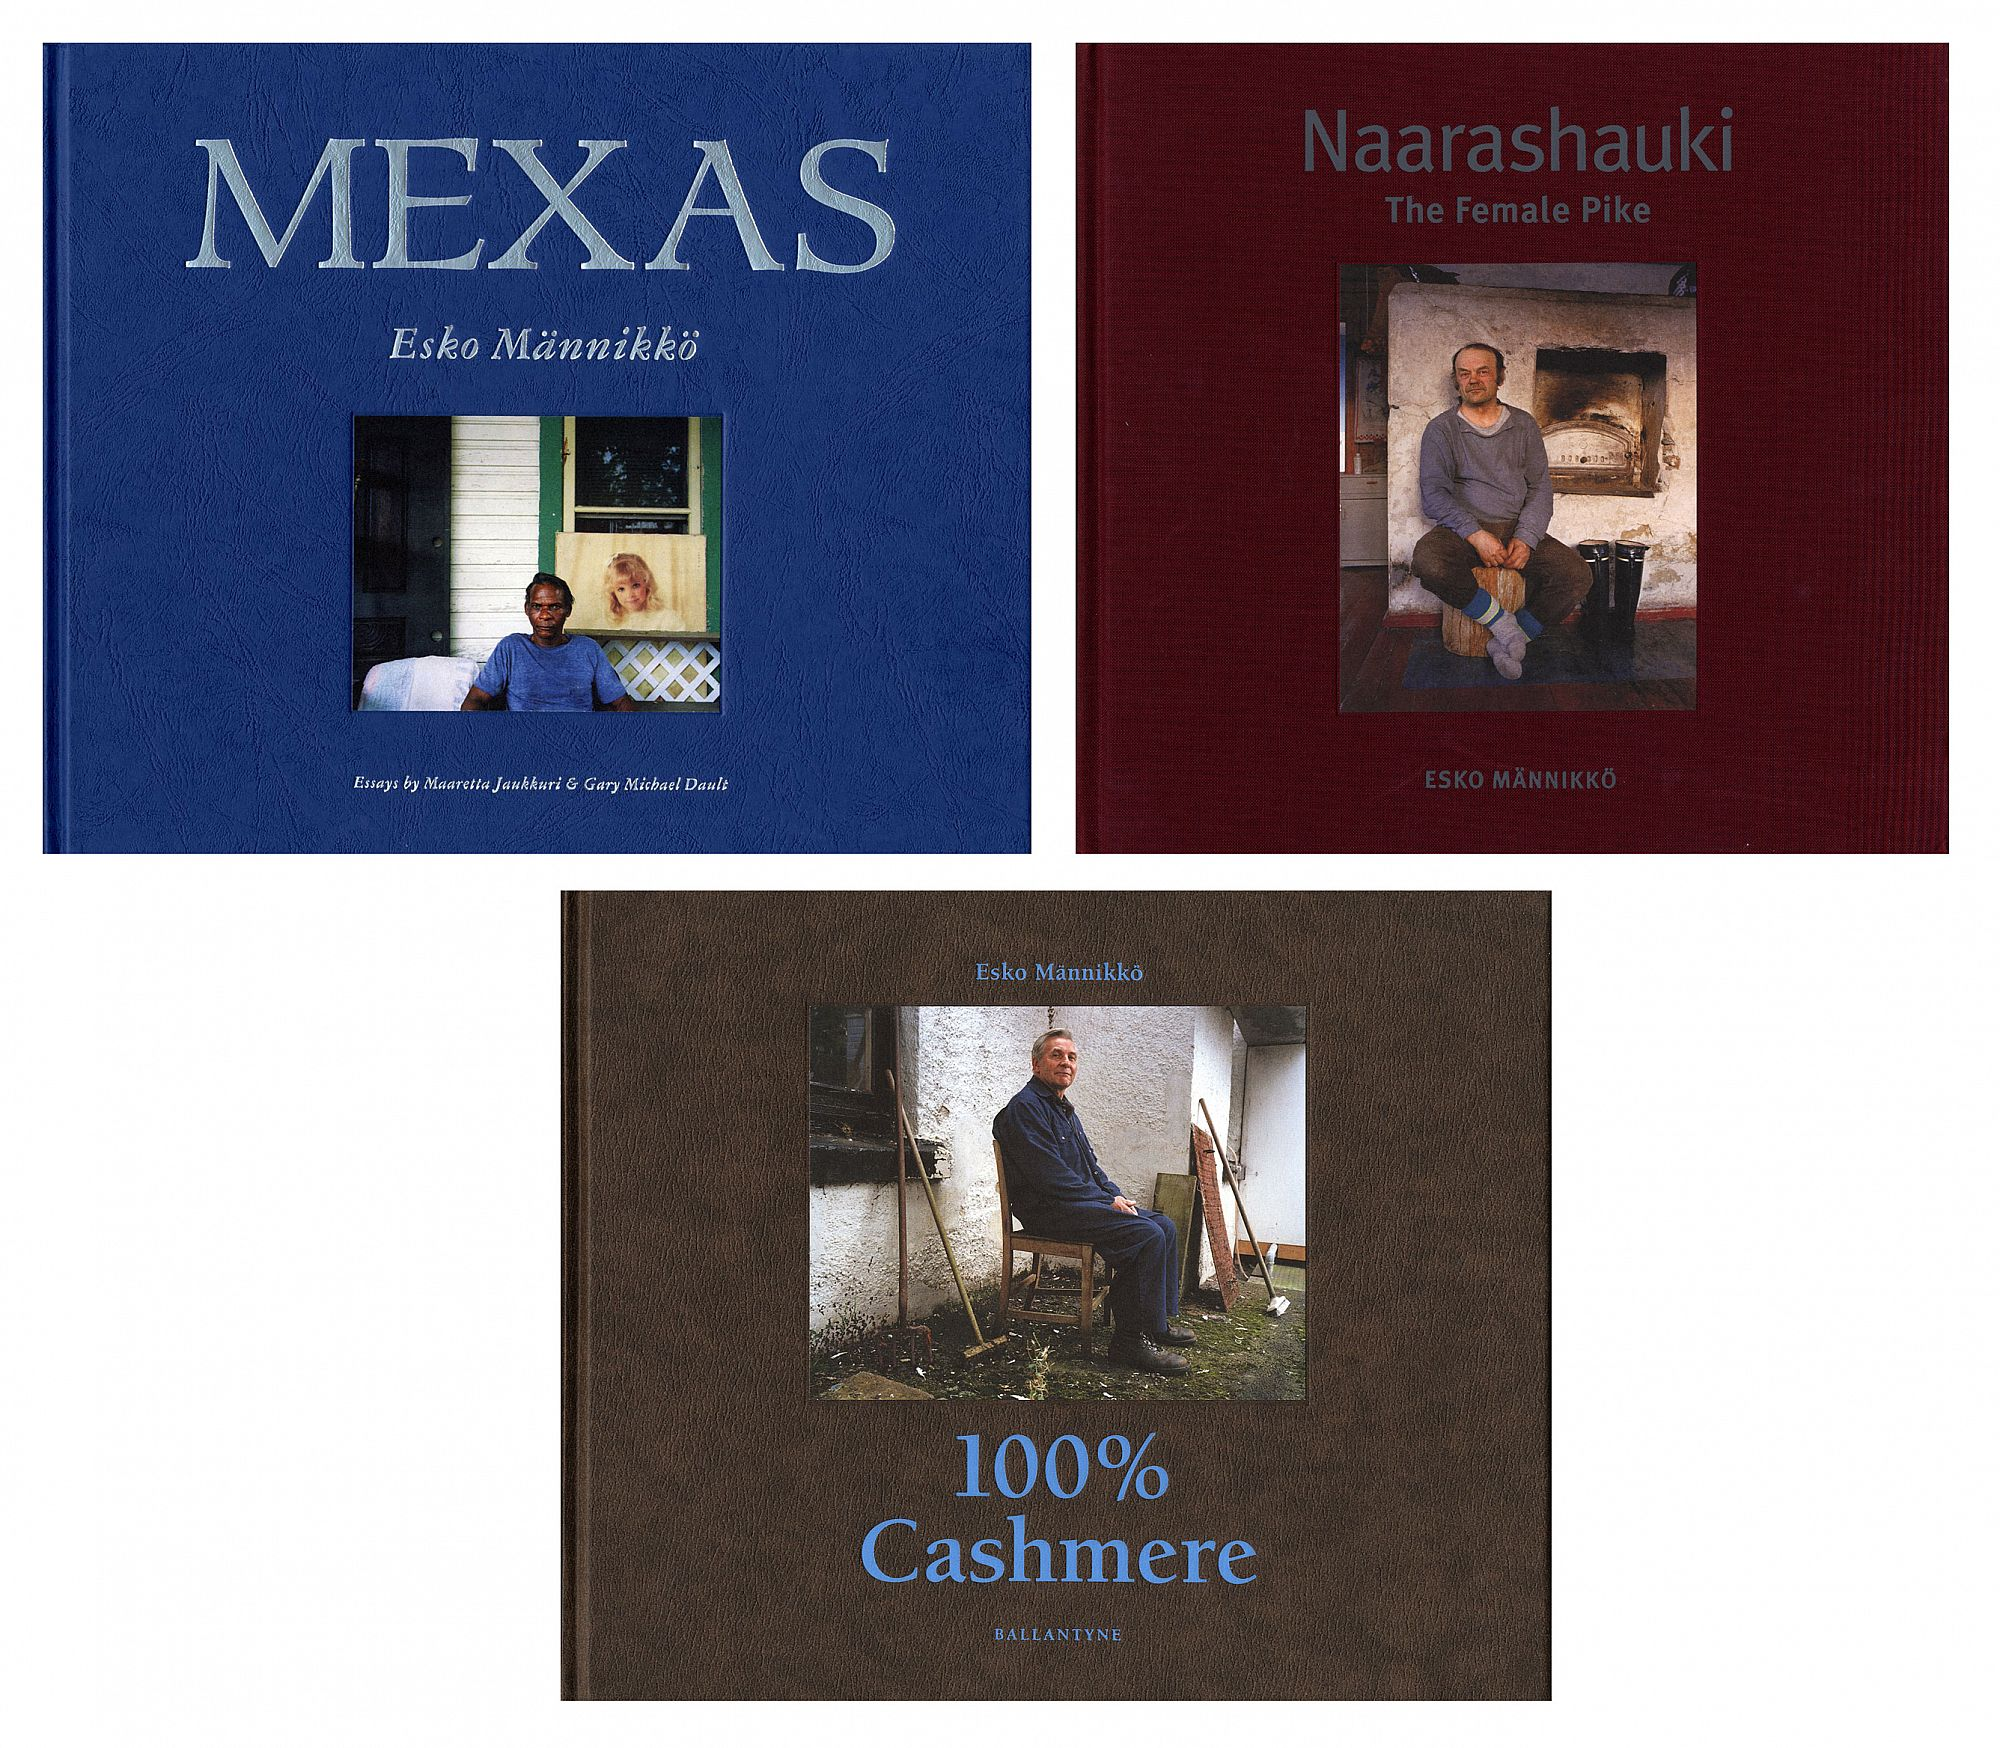 Esko Männikkö: Mexas, Naarashauki: The Female Pike & 100% Cashmere (All First Editions) [Each SIGNED]